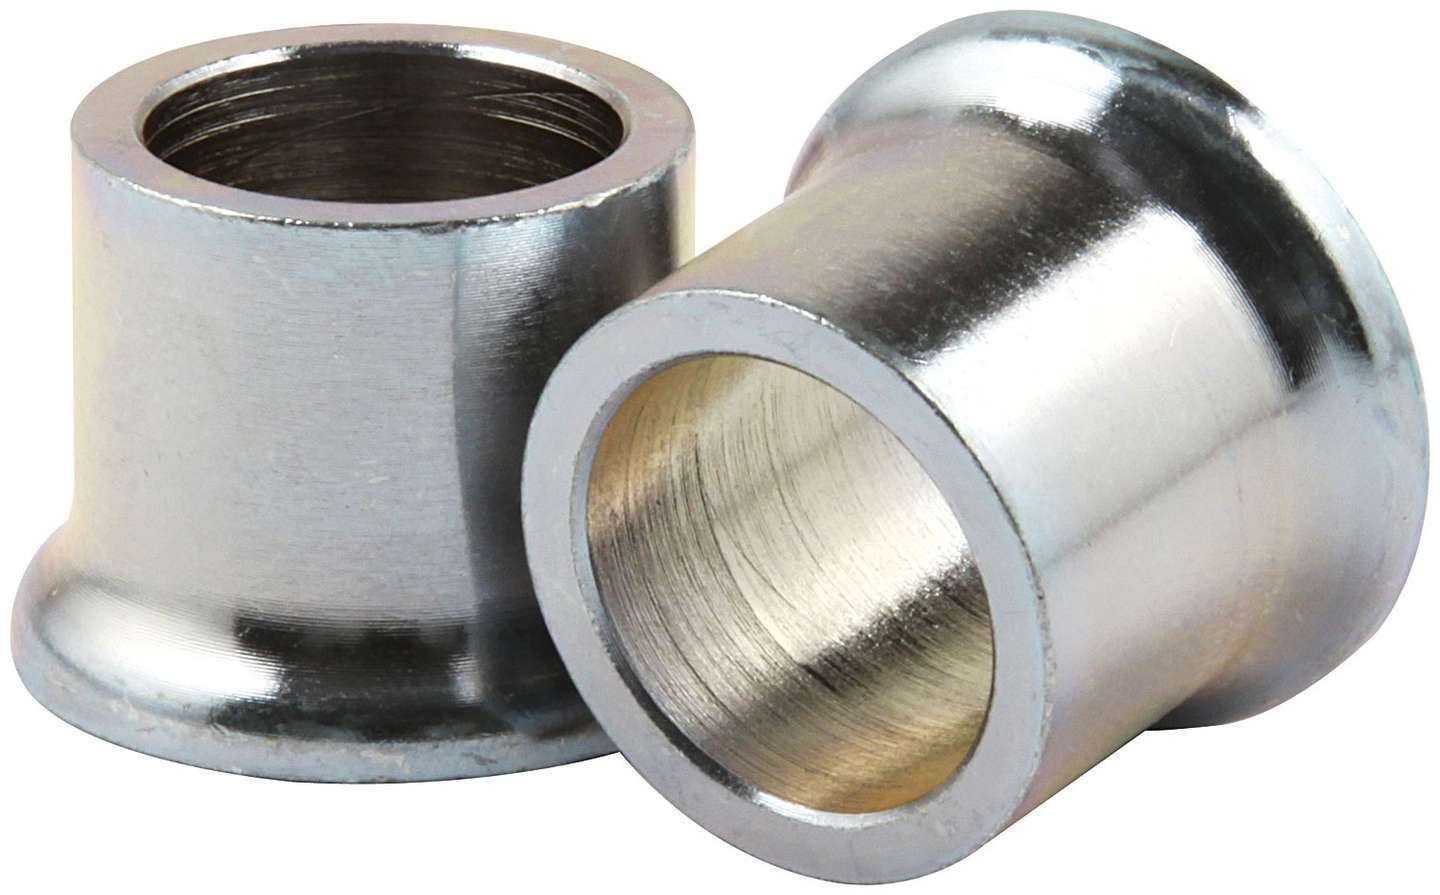 Allstar Performance 18584 Tapered Spacer, 5/8 in ID, 3/4 in Thick, Steel, Zinc Oxide, Universal, Pair